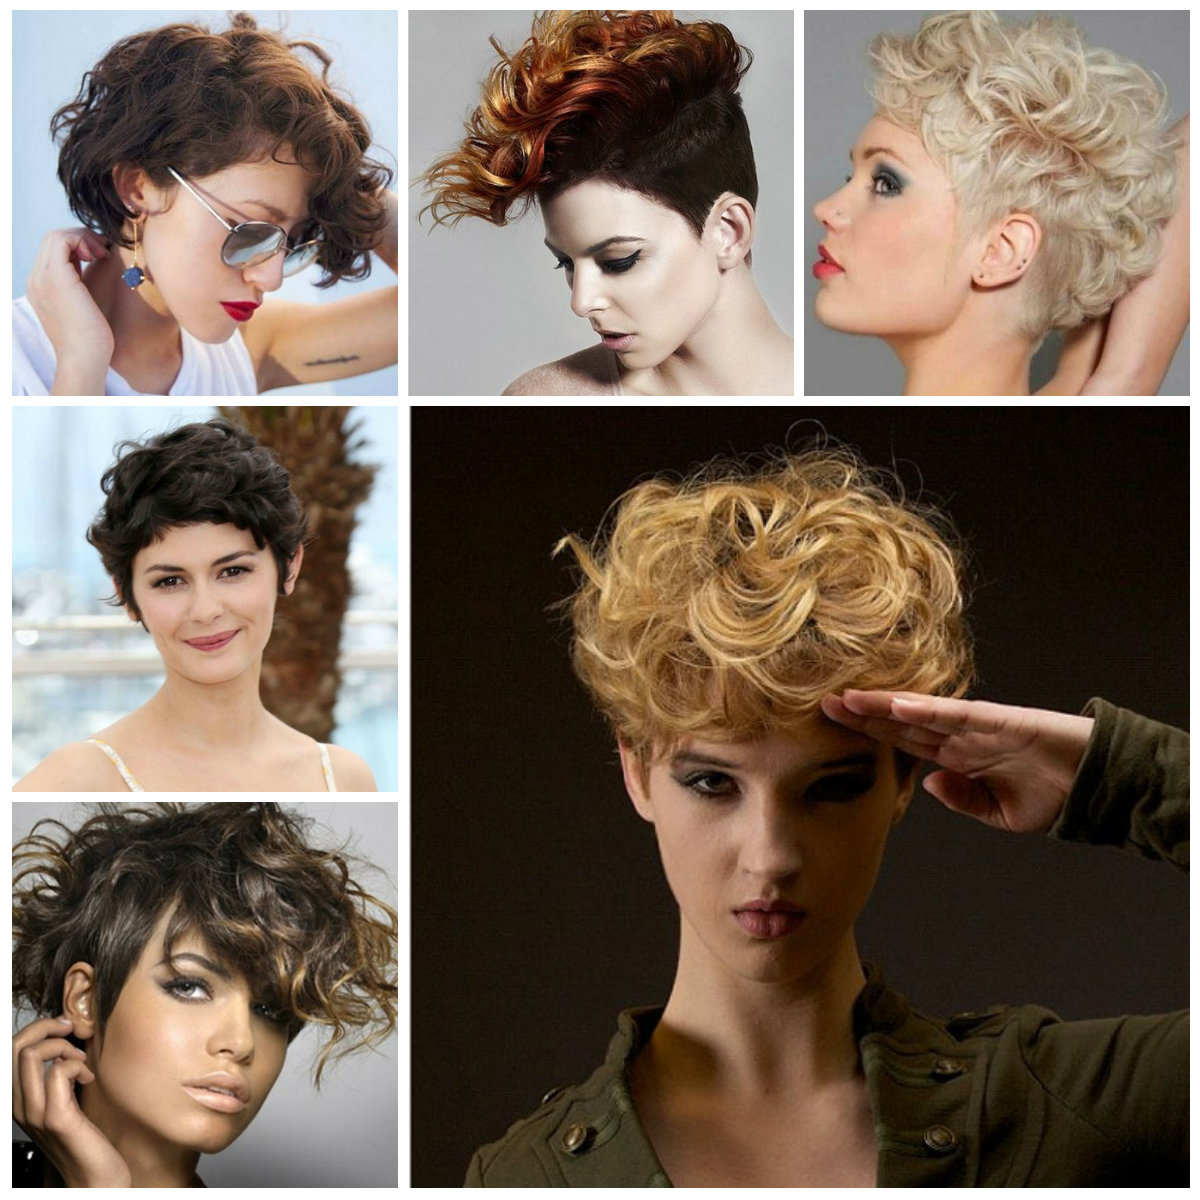 2019 Curly Pixie Haircuts | Hairstyles For Women 2019, Haircuts For Throughout Long Messy Curly Pixie Haircuts (View 3 of 20)